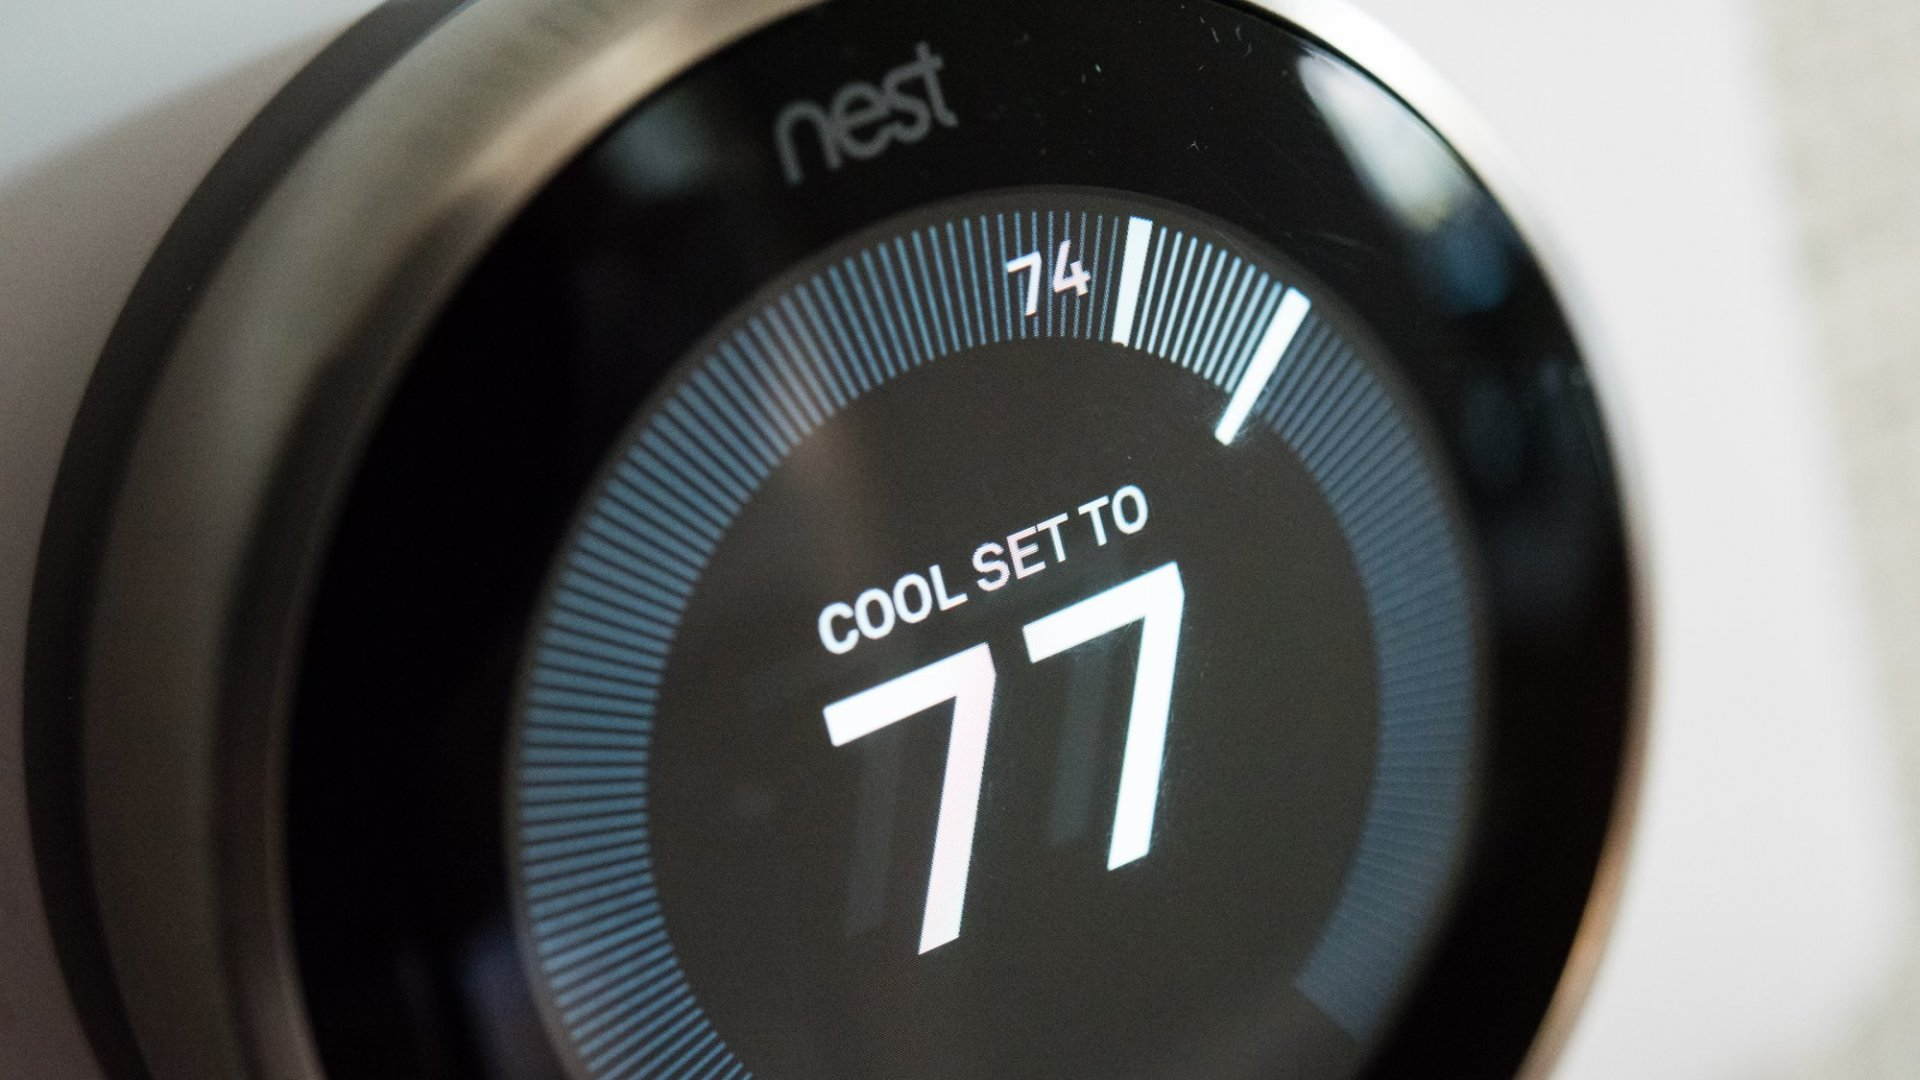 Nest thermostats are among the many household items that use IoT and are becoming commonly used by consumers.